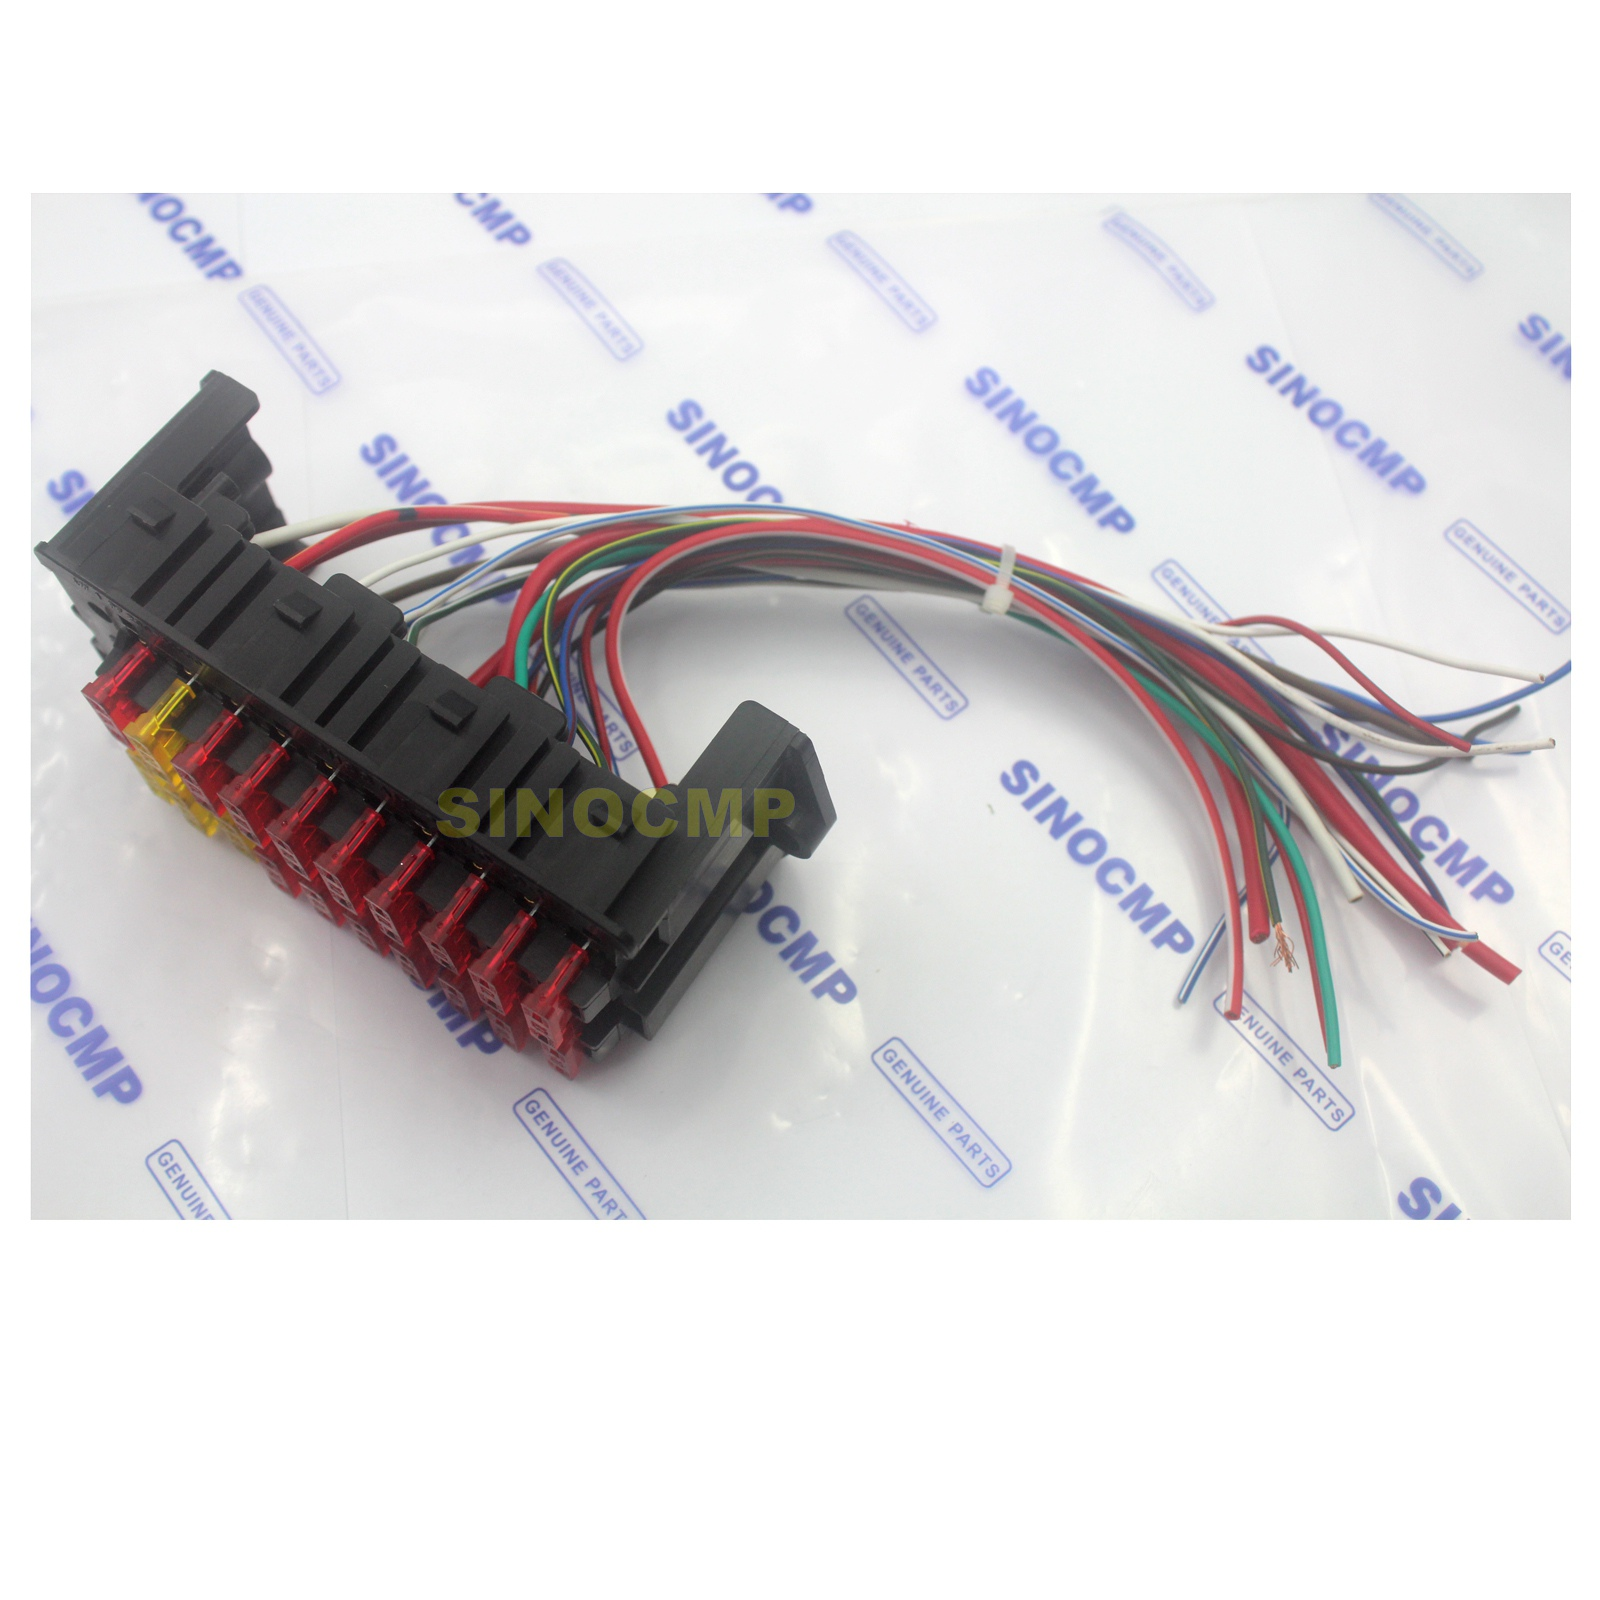 Fuse Box Assembly For Komatsu Pc 7 Pc200 Pc220 Pc300 Excavator Parts Of A